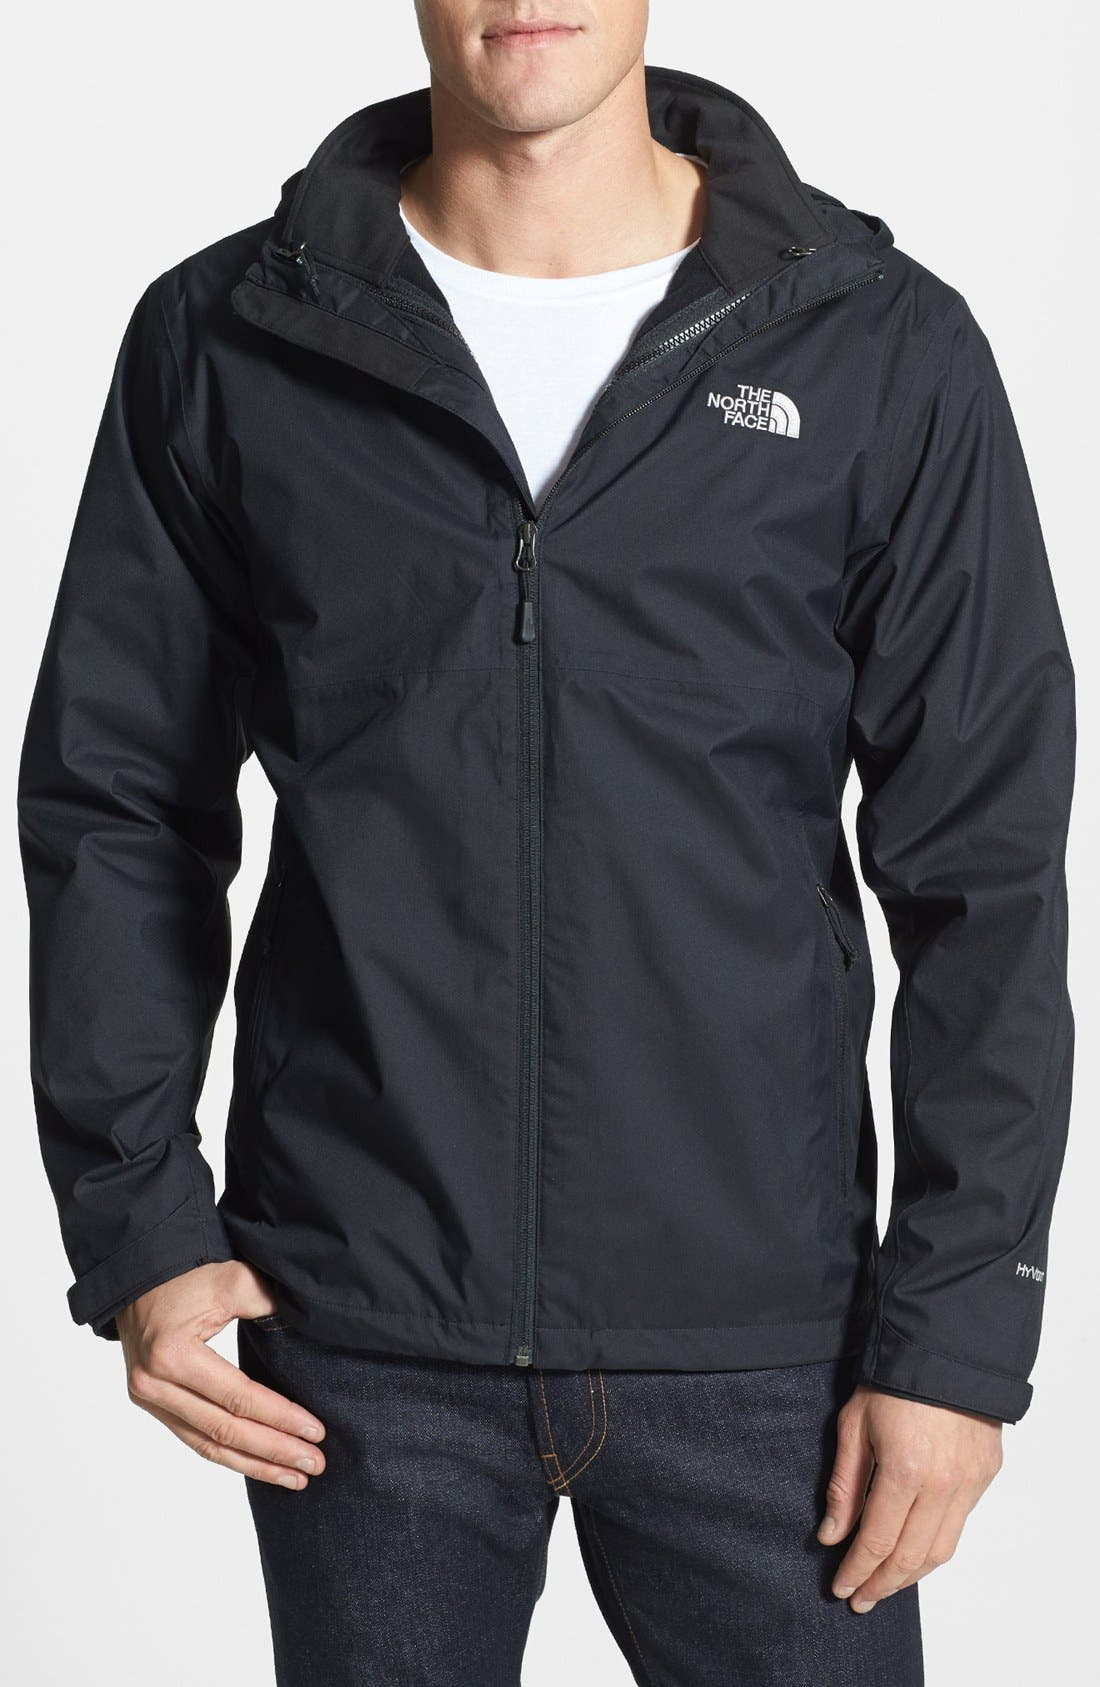 THE NORTH FACE, 'Momentum TriClimate' 3-in-1 Waterproof Hooded Jacket, Main thumbnail 1, color, 001